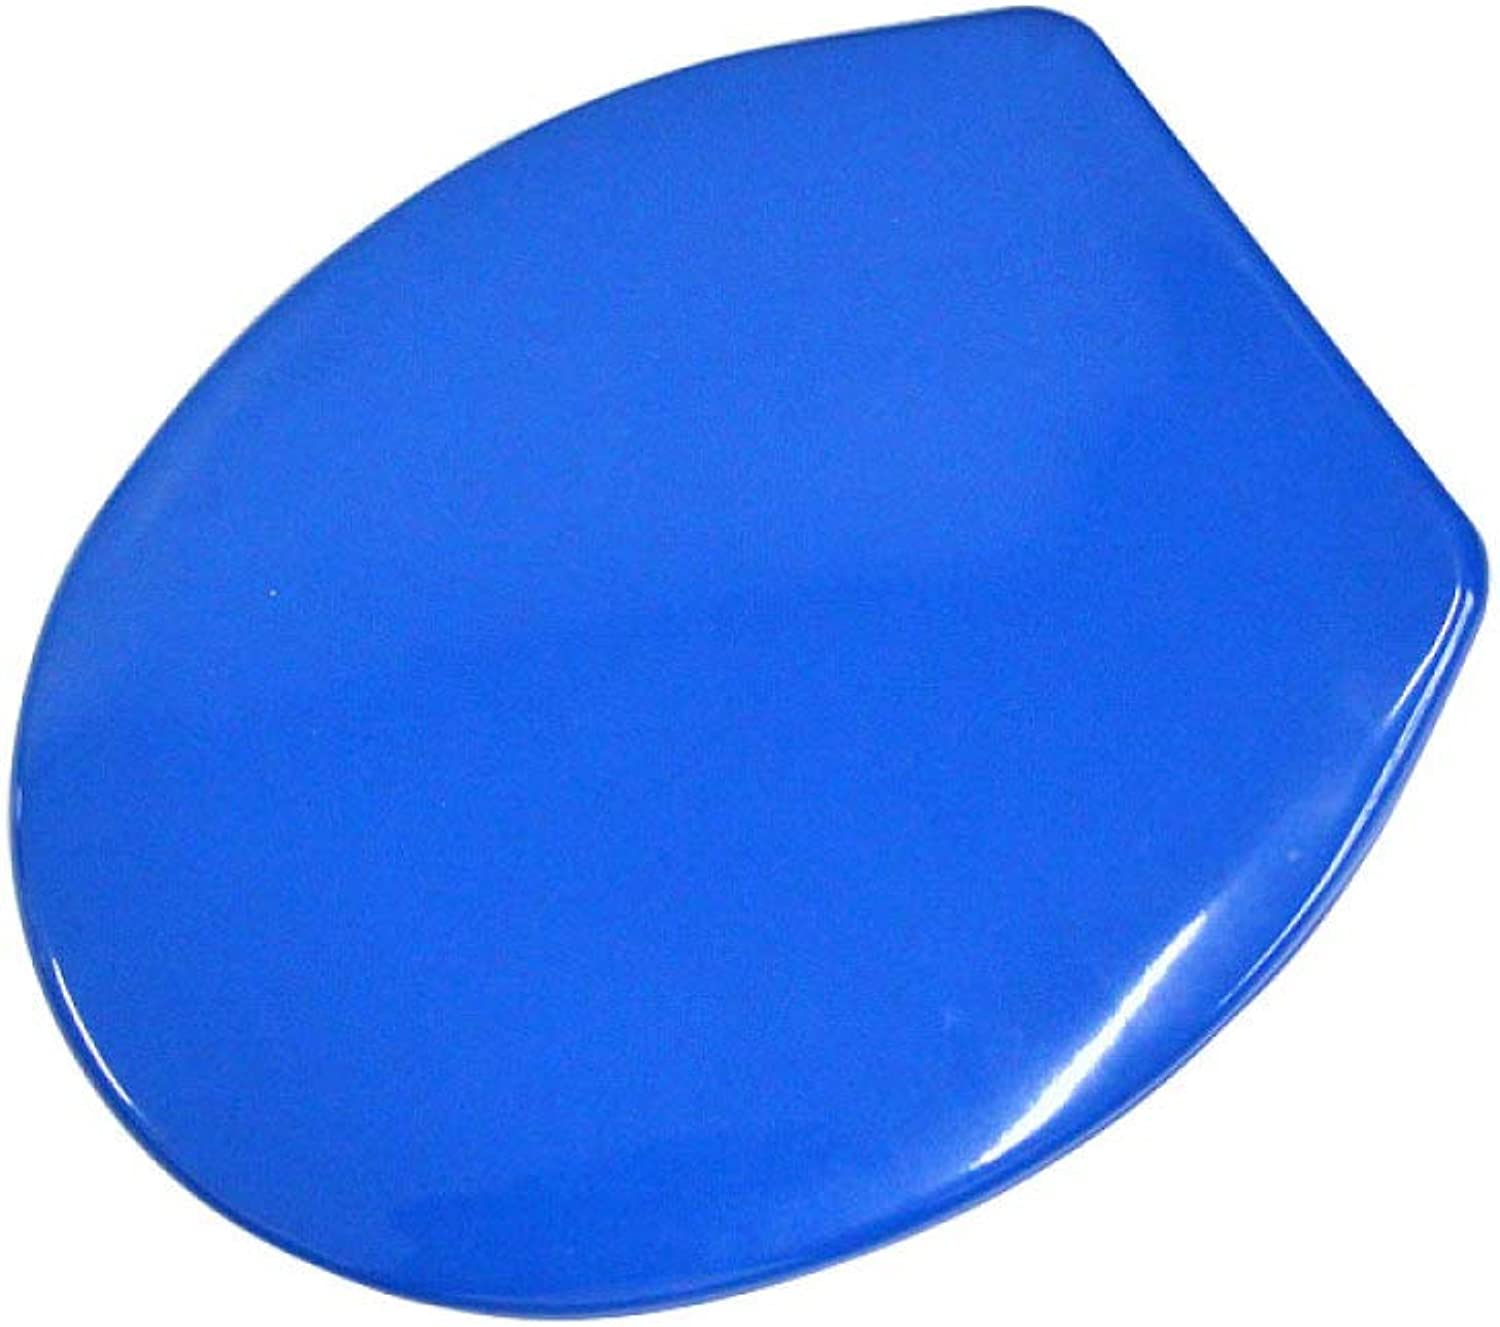 Toilet Seat With Urea-formaldehyde Slow Down Antibacterial Ultra Resistant Toilet Lid For O V U Shape Compatible Toilet Seat,bluee